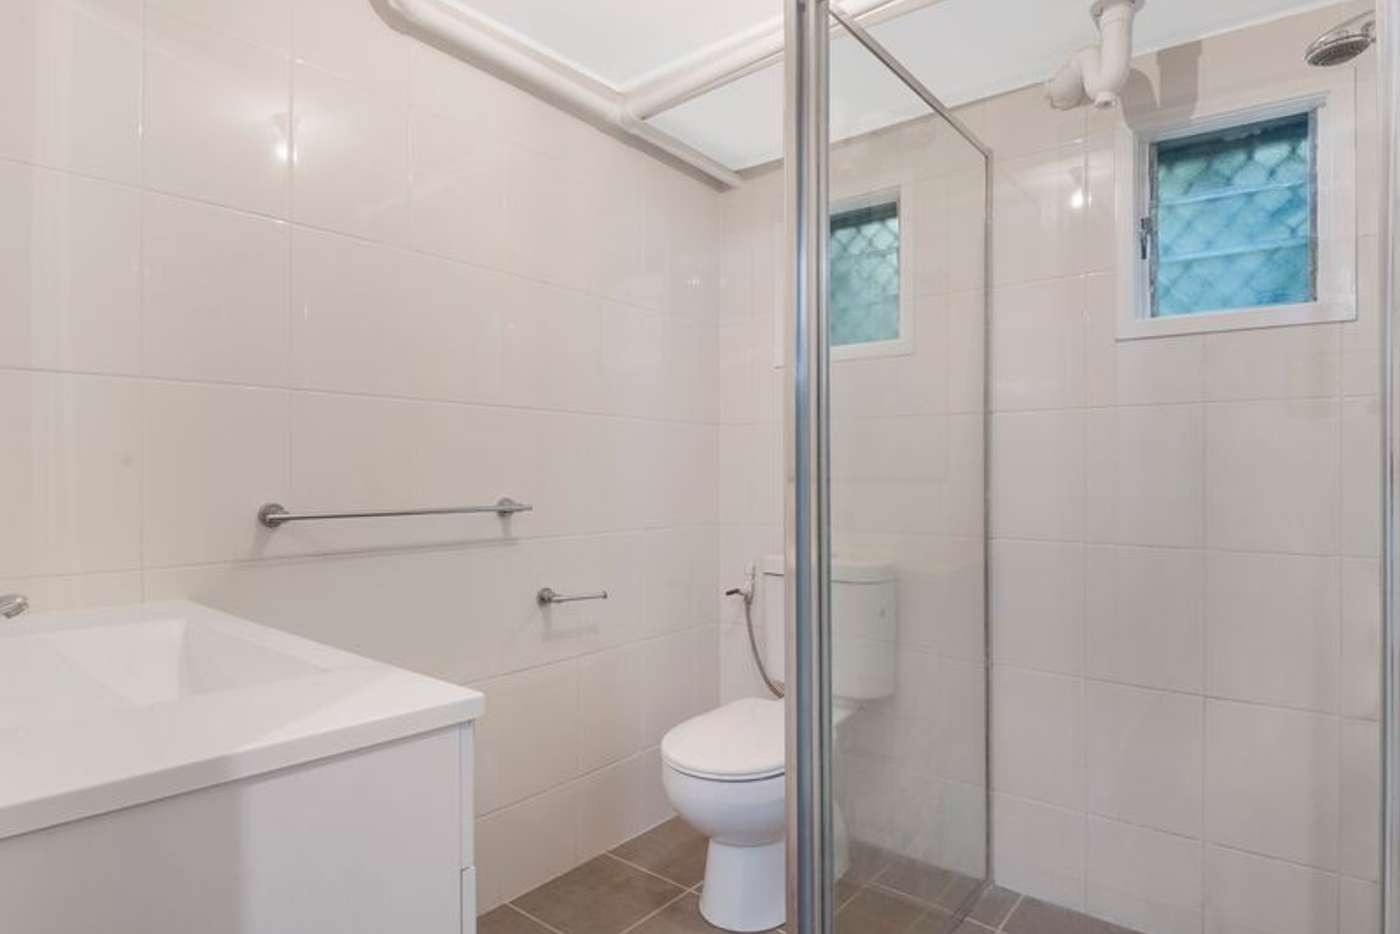 Sixth view of Homely flat listing, 4A Wairoo Street, Burleigh Heads QLD 4220